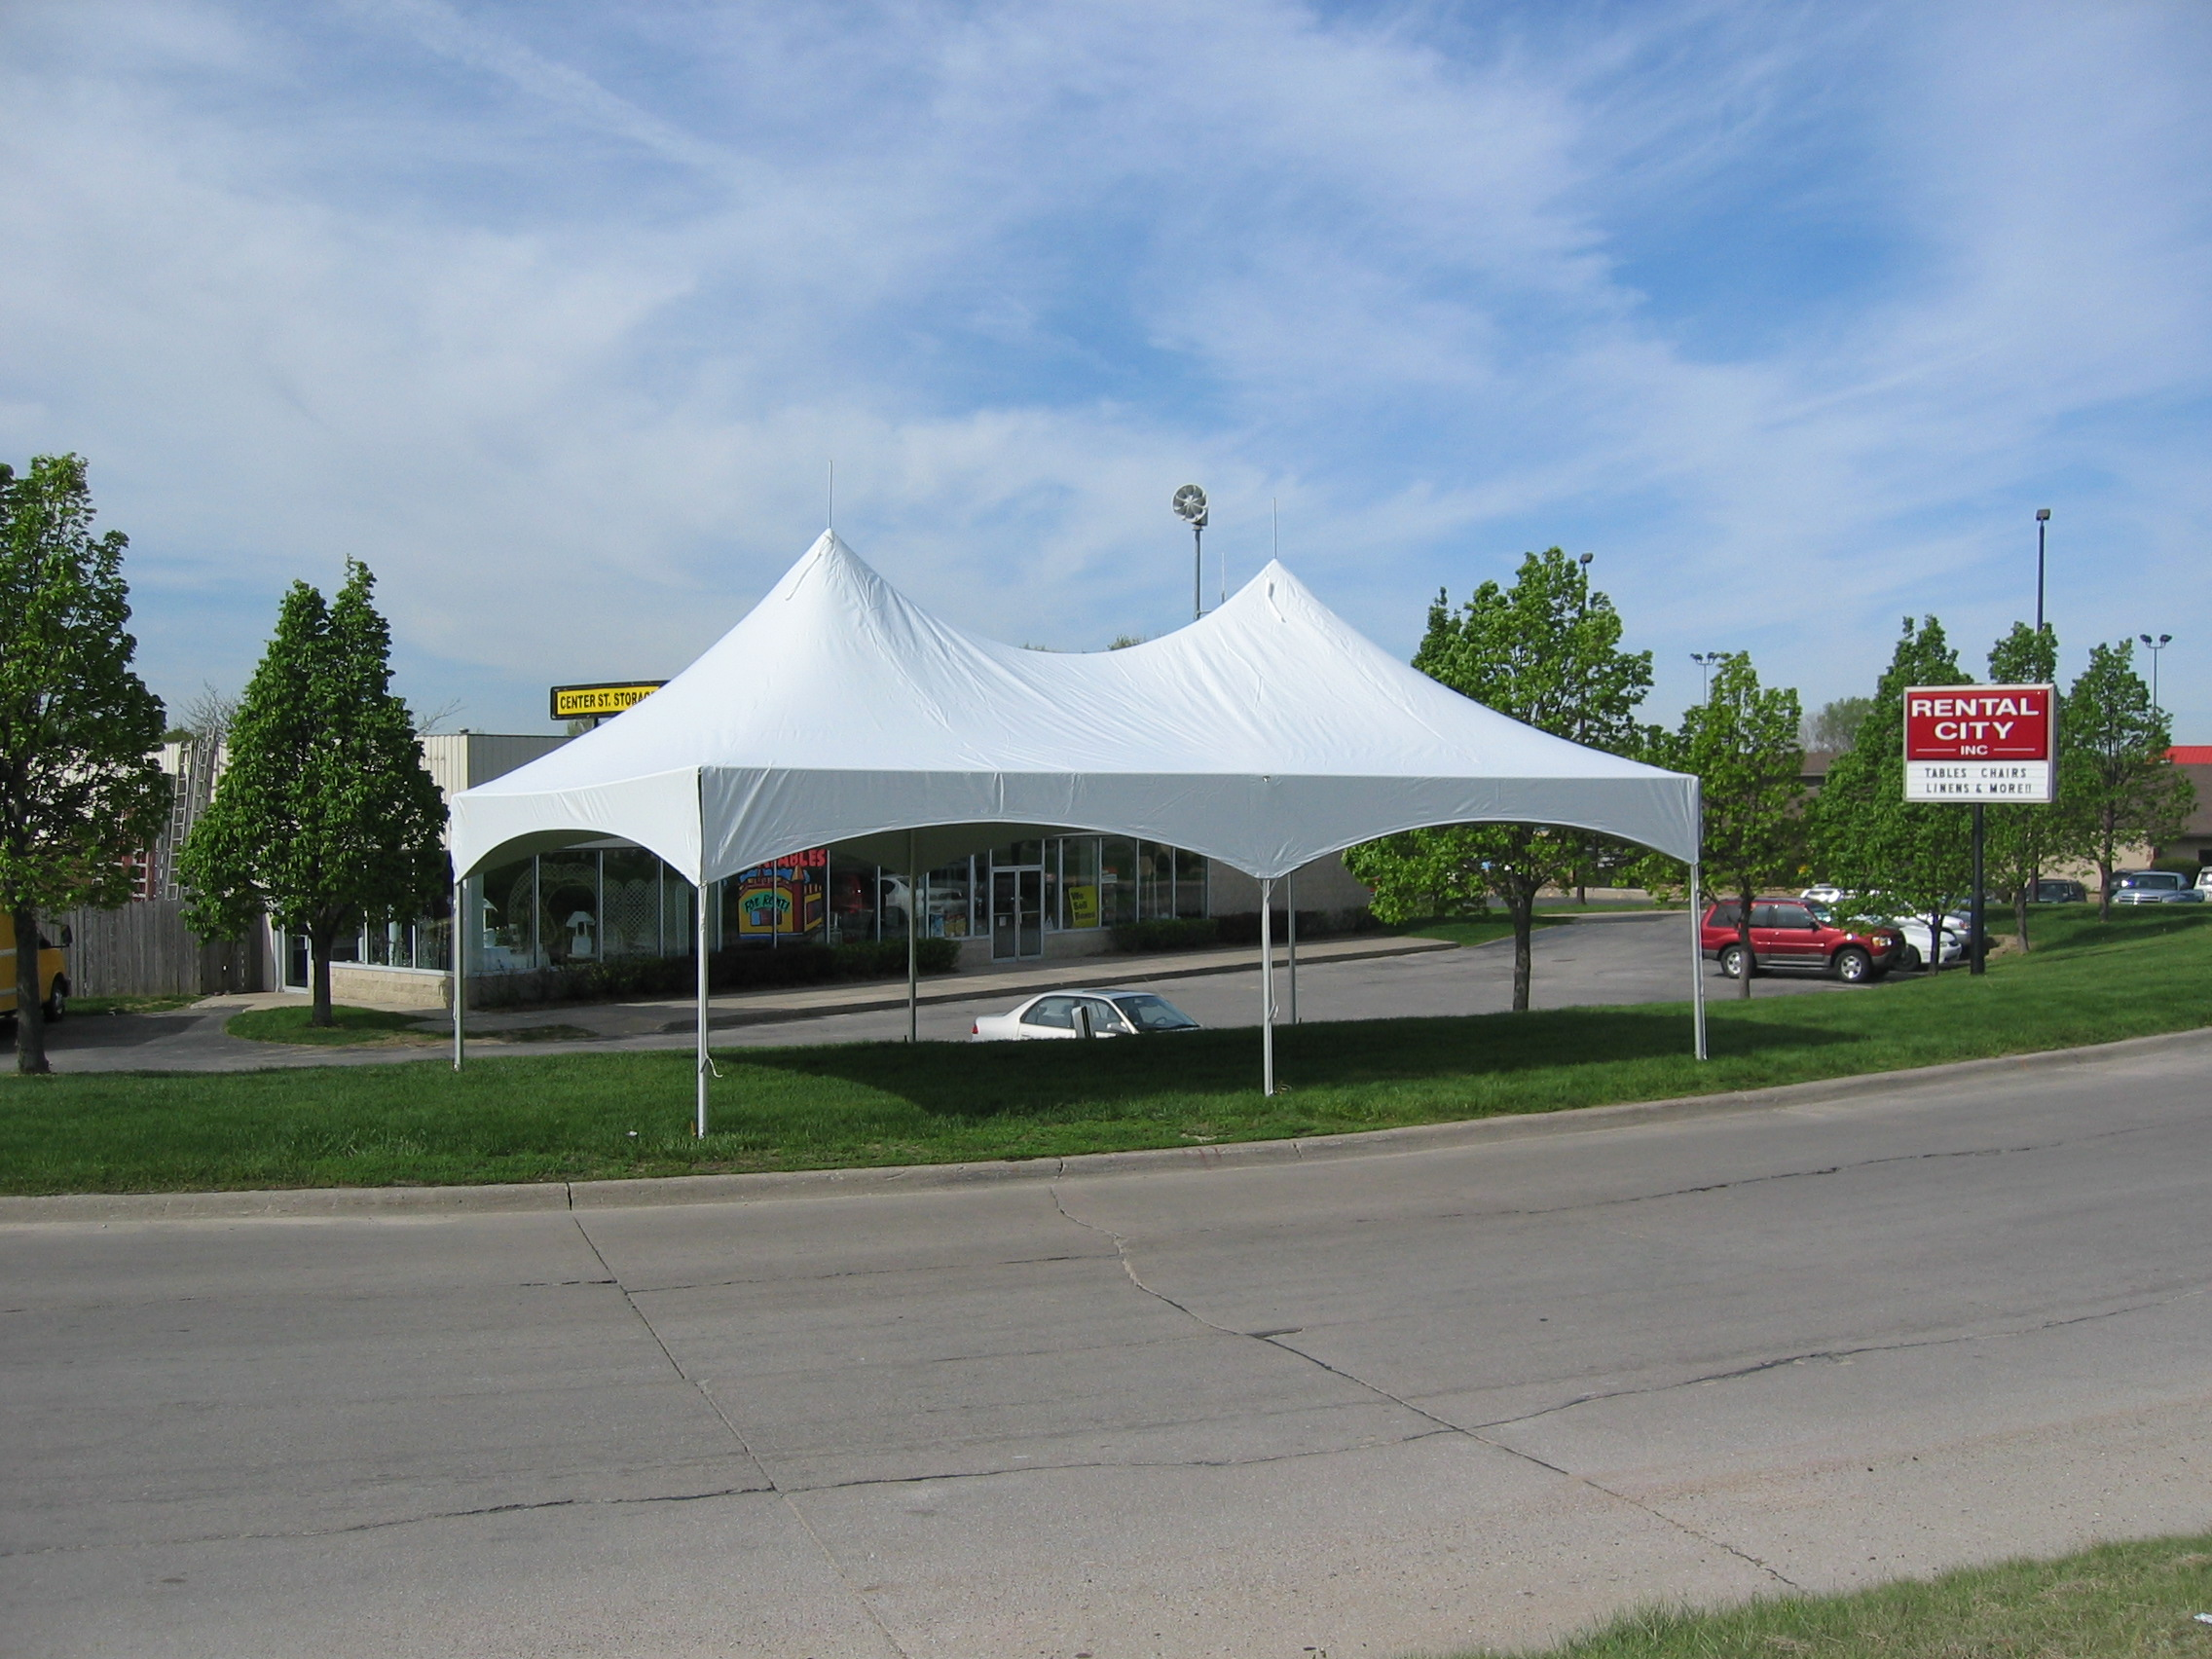 ... 20x30 frame tent ... & Rental City - Party u0026 Equipment Rentals in Omaha Nebraska